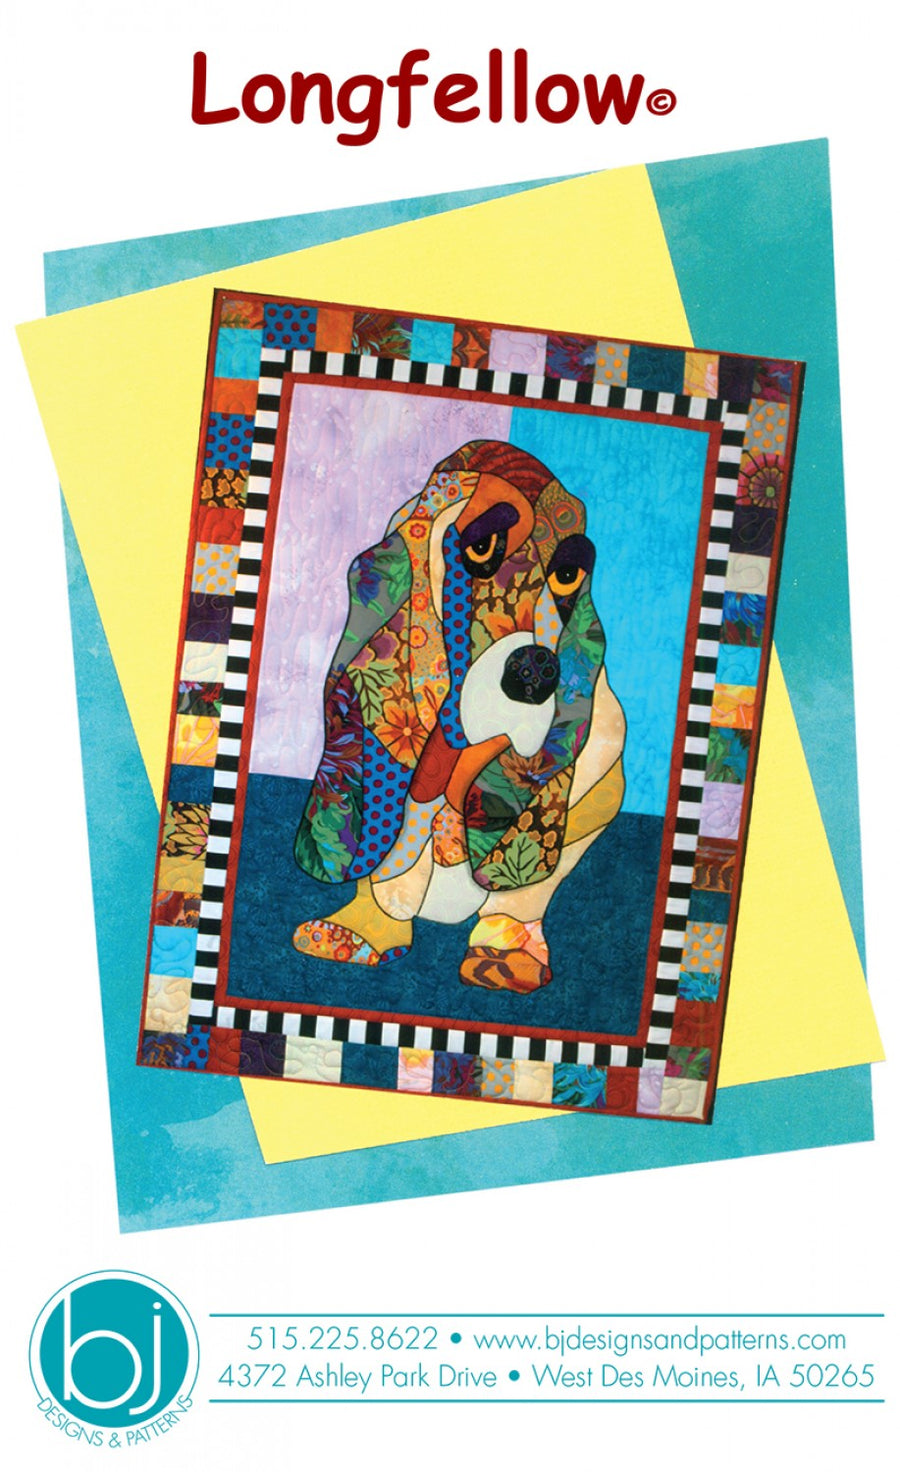 BJ Designs & Patterns Longfellow Basset Hound Dog Applique Quilt Pattern